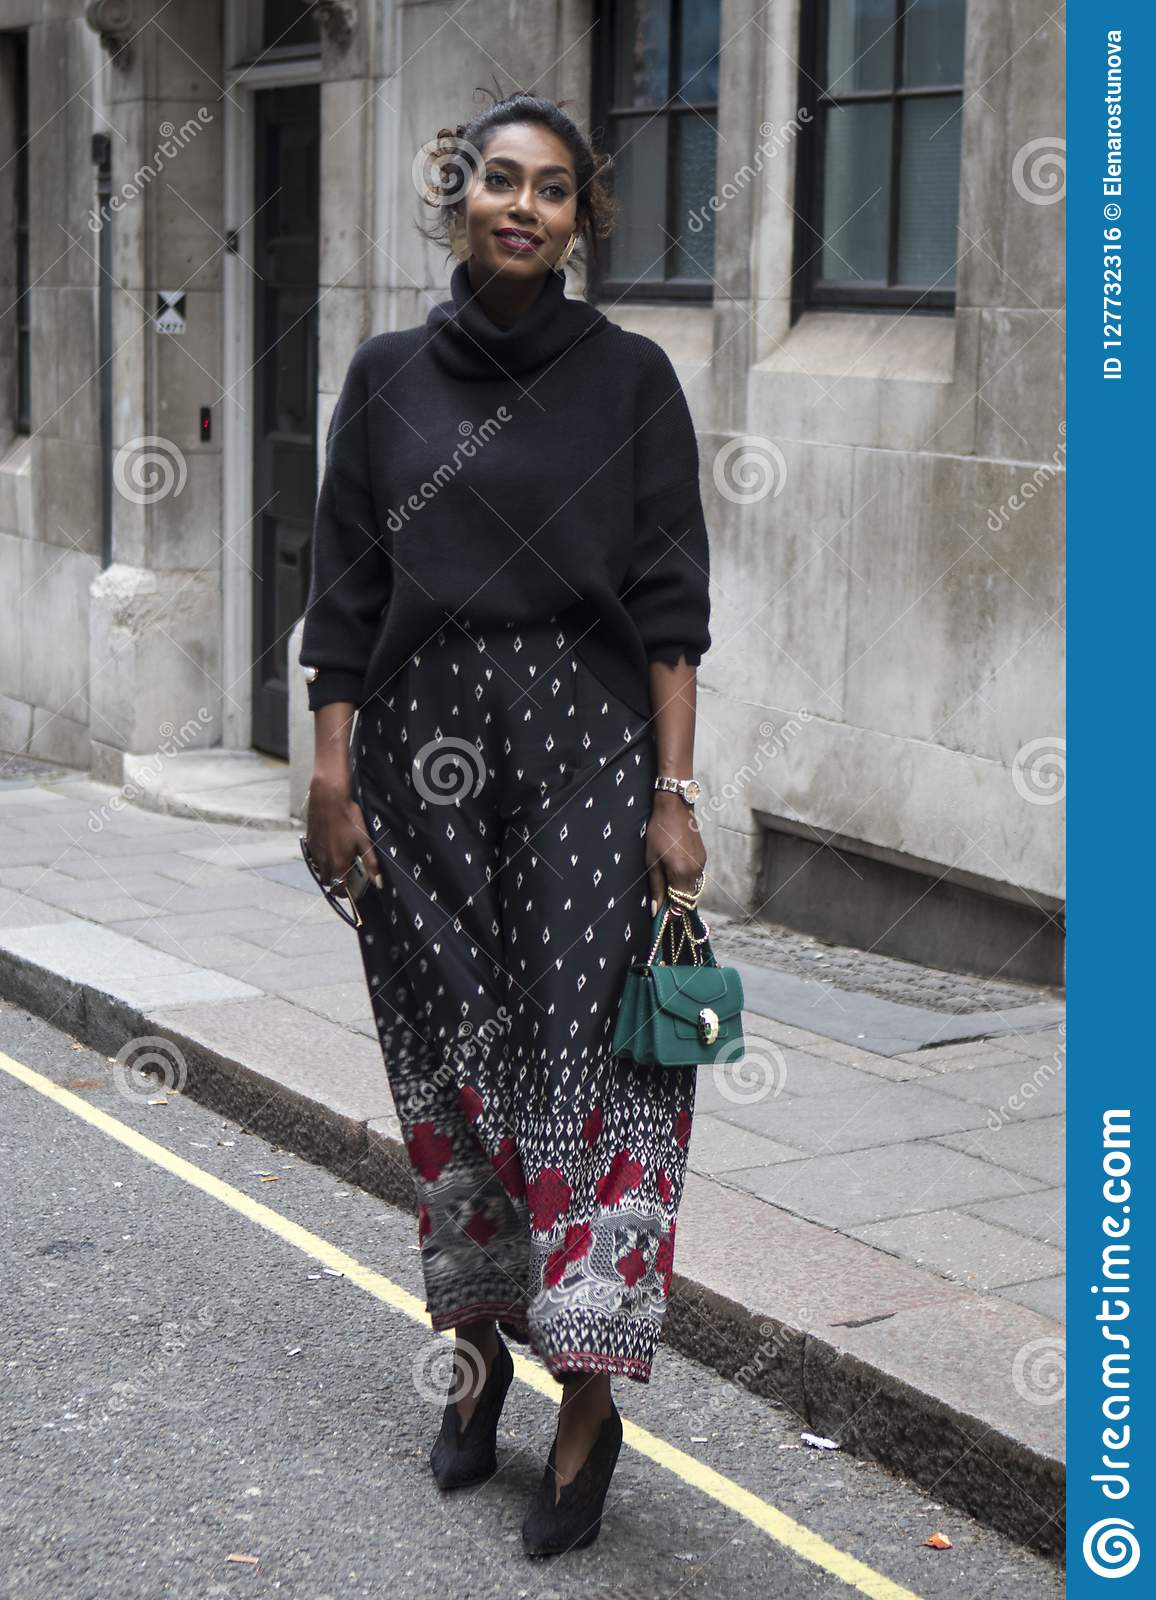 18edbc64f6b People On The Street During The London Fashion Week. Editorial Photo ...